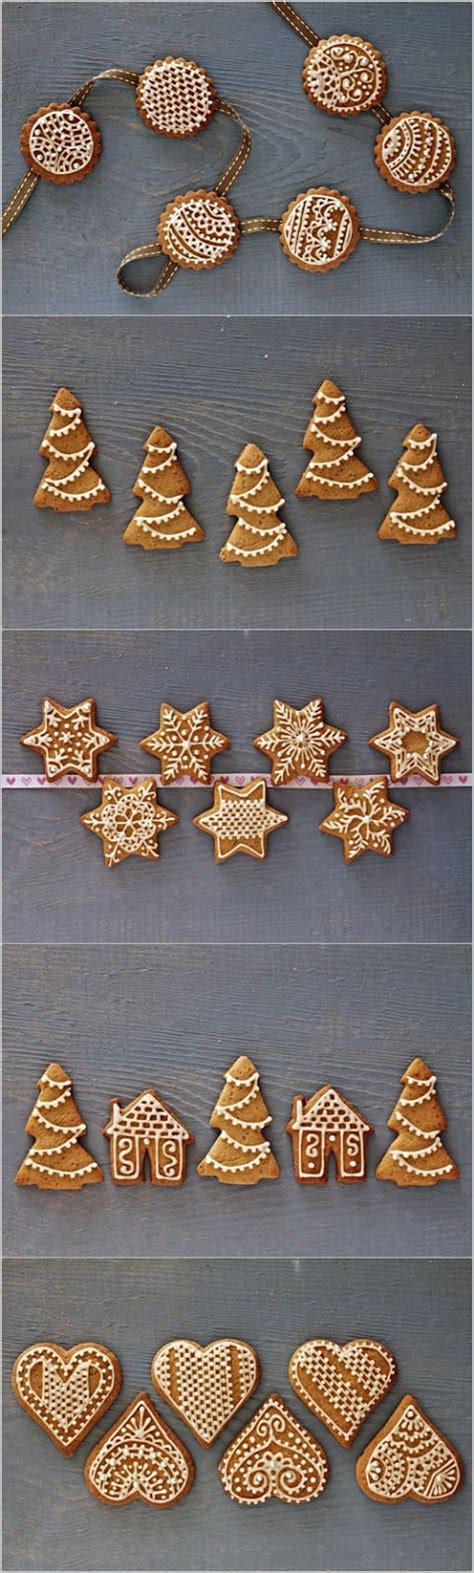 Decorated Gingerbread by Festive Decorated Gingerbread Cookies Mydiversekitchen